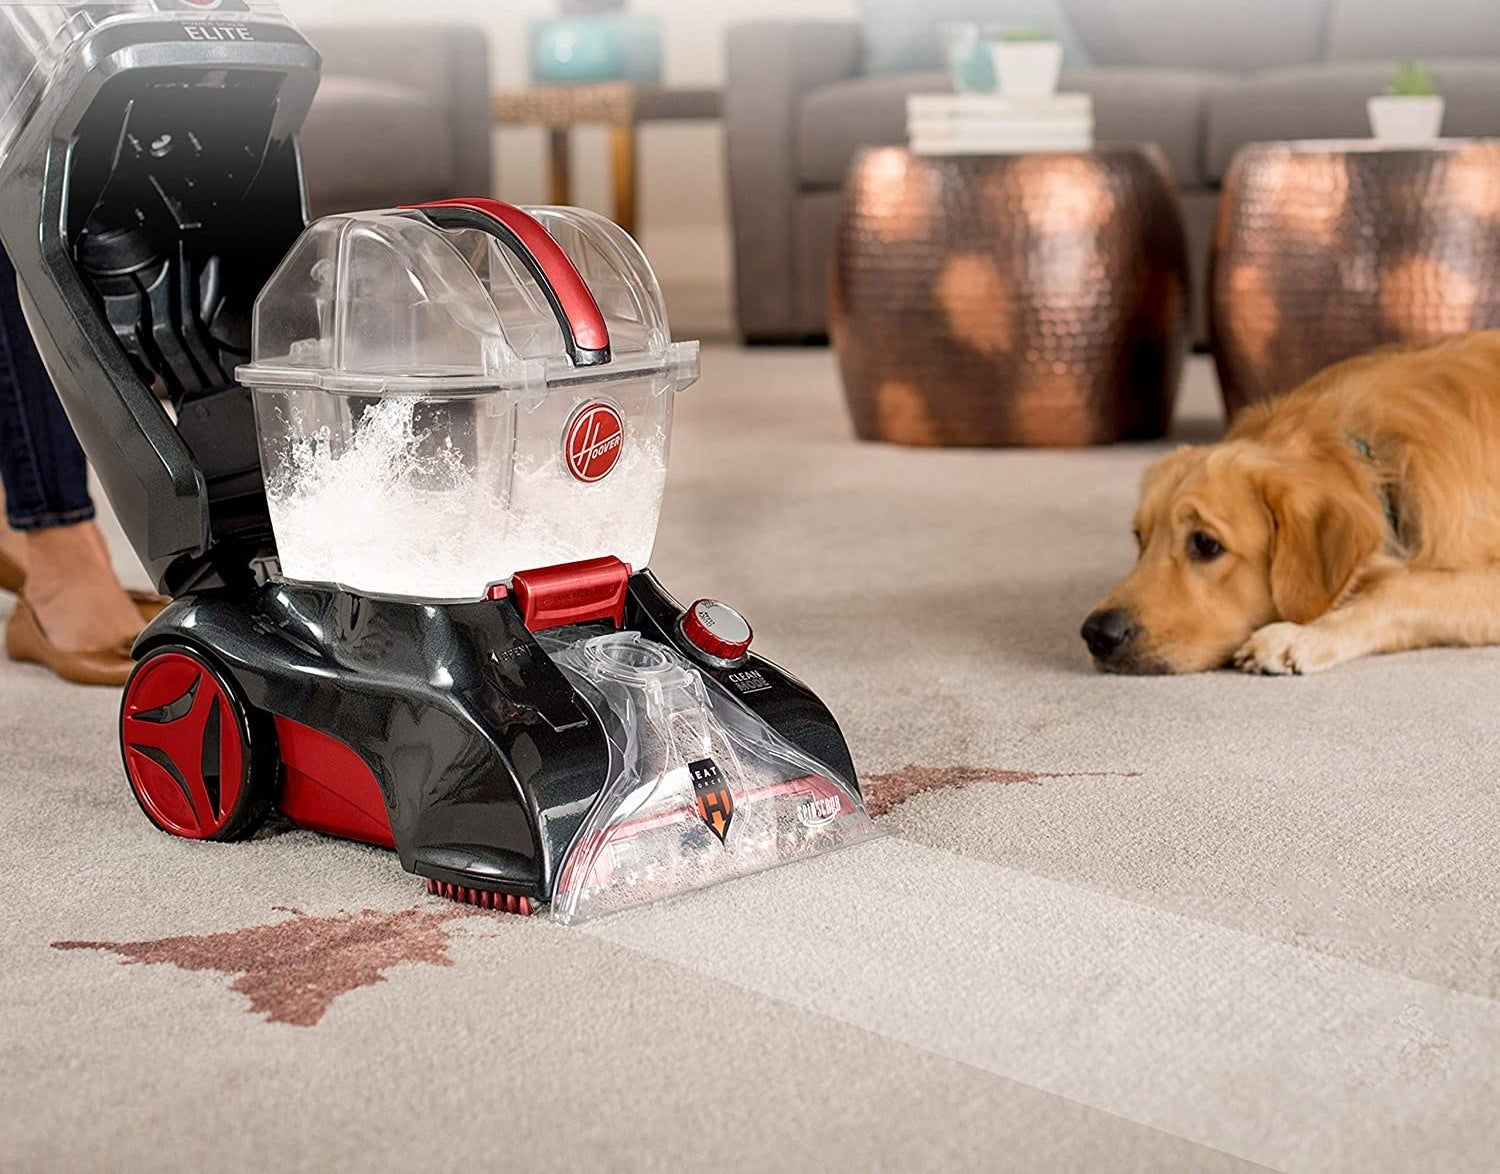 The vacuum in deep clean mode removing deep-set stains like red wine